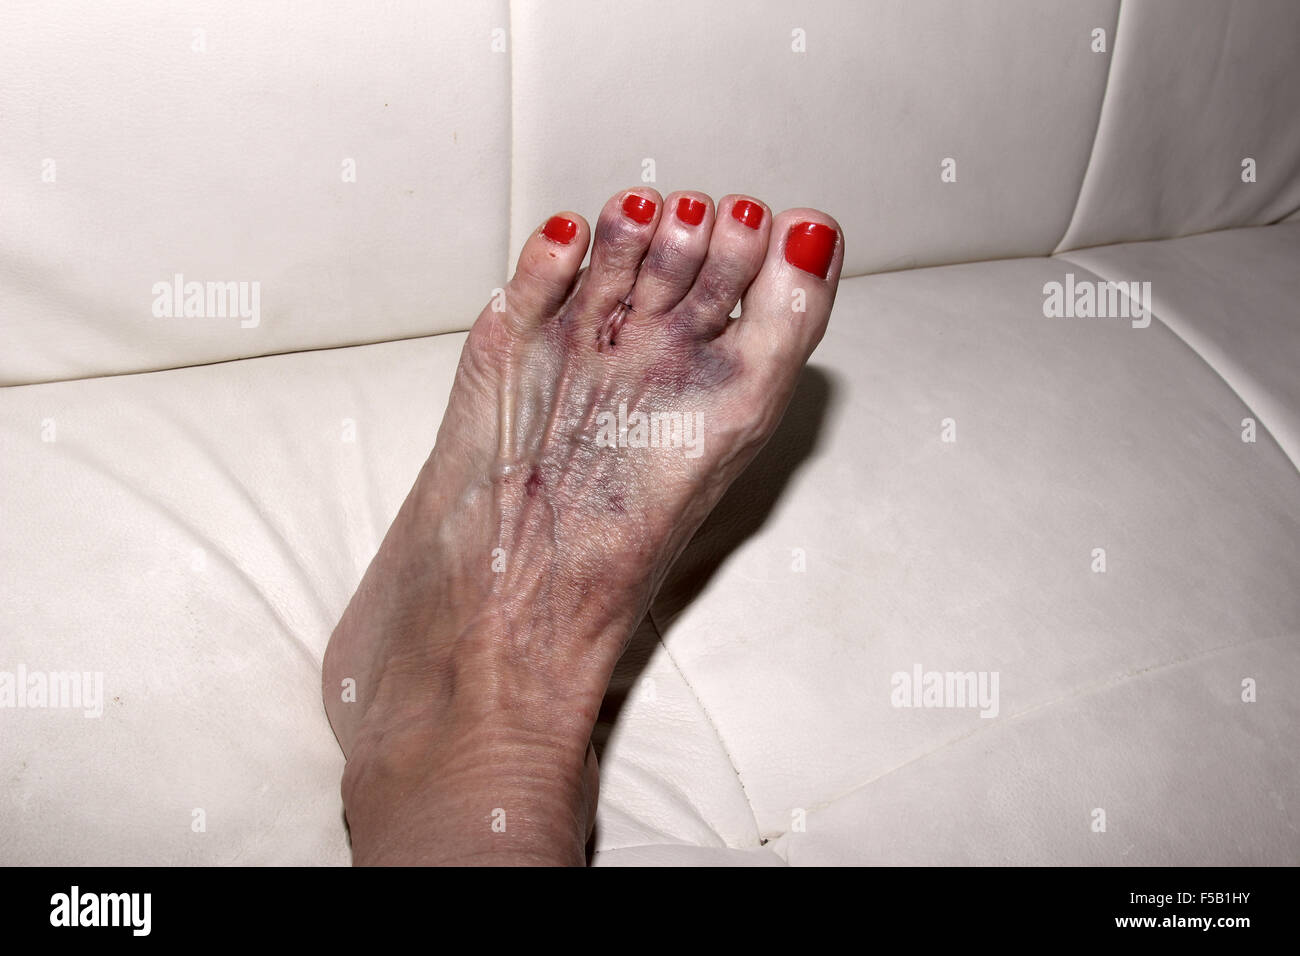 foot after morton s neuroma surgery between the second and third toe stock photo 89367879 alamy. Black Bedroom Furniture Sets. Home Design Ideas